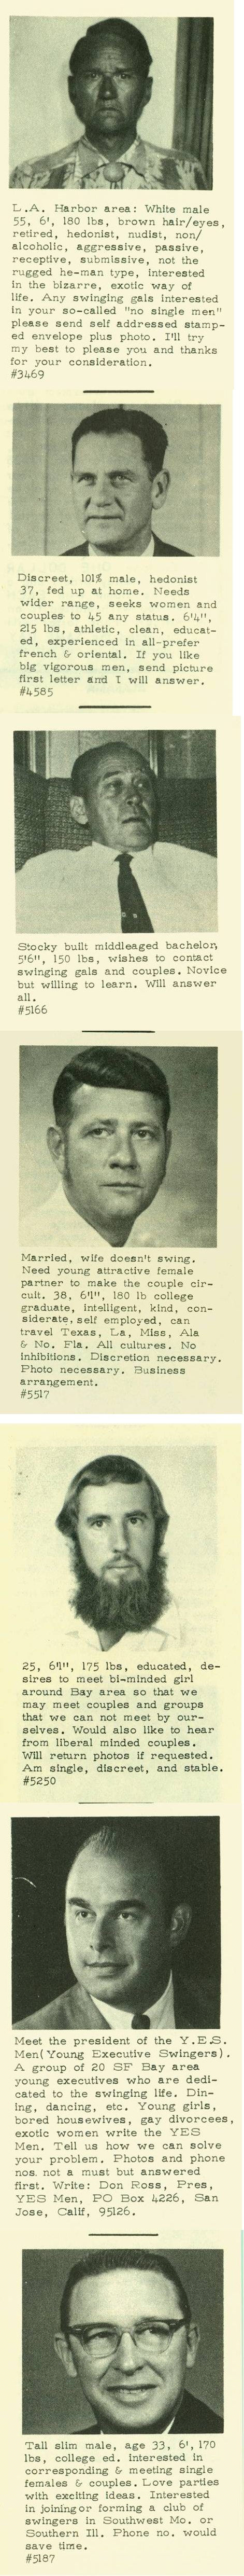 Series of swingers personal ads from the 1960s